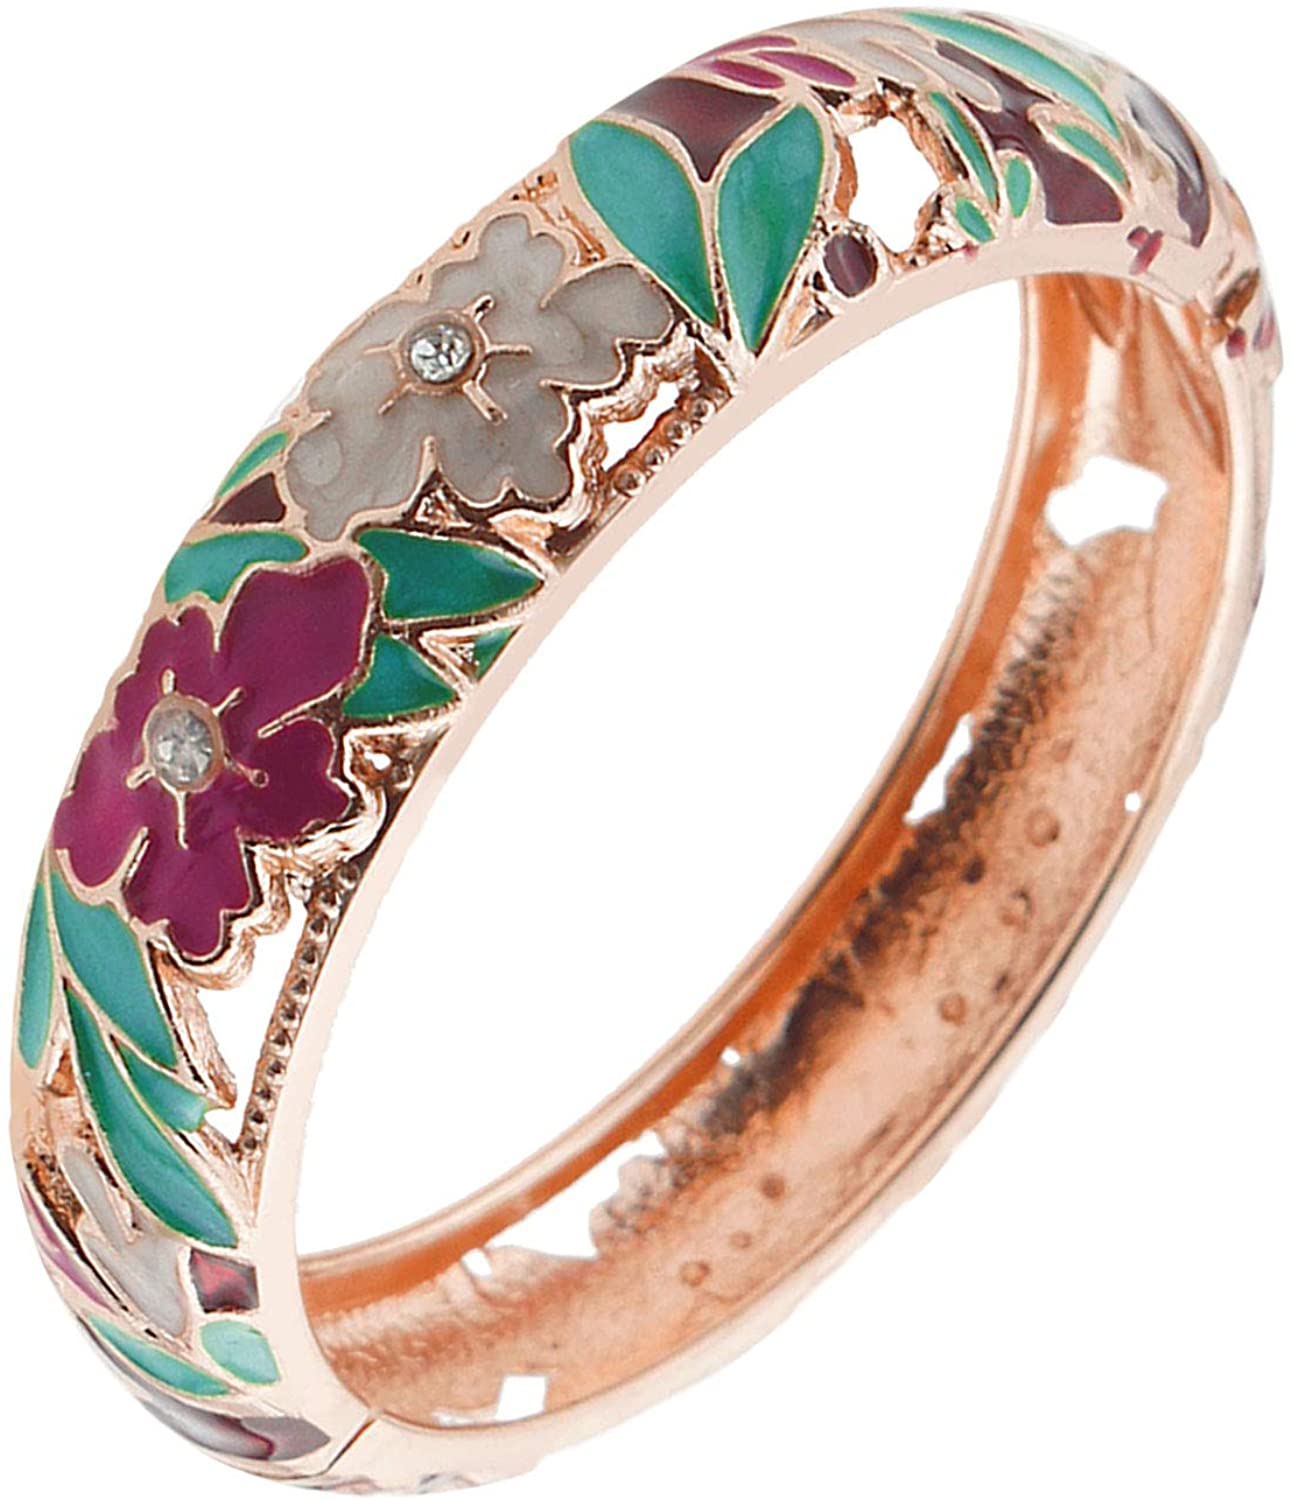 UJOY Women's Jewelry Cloisonne Leaf Flower Enameled Gold Plated Filigree Crystals Bangle Bracelets for Gifts 88A22